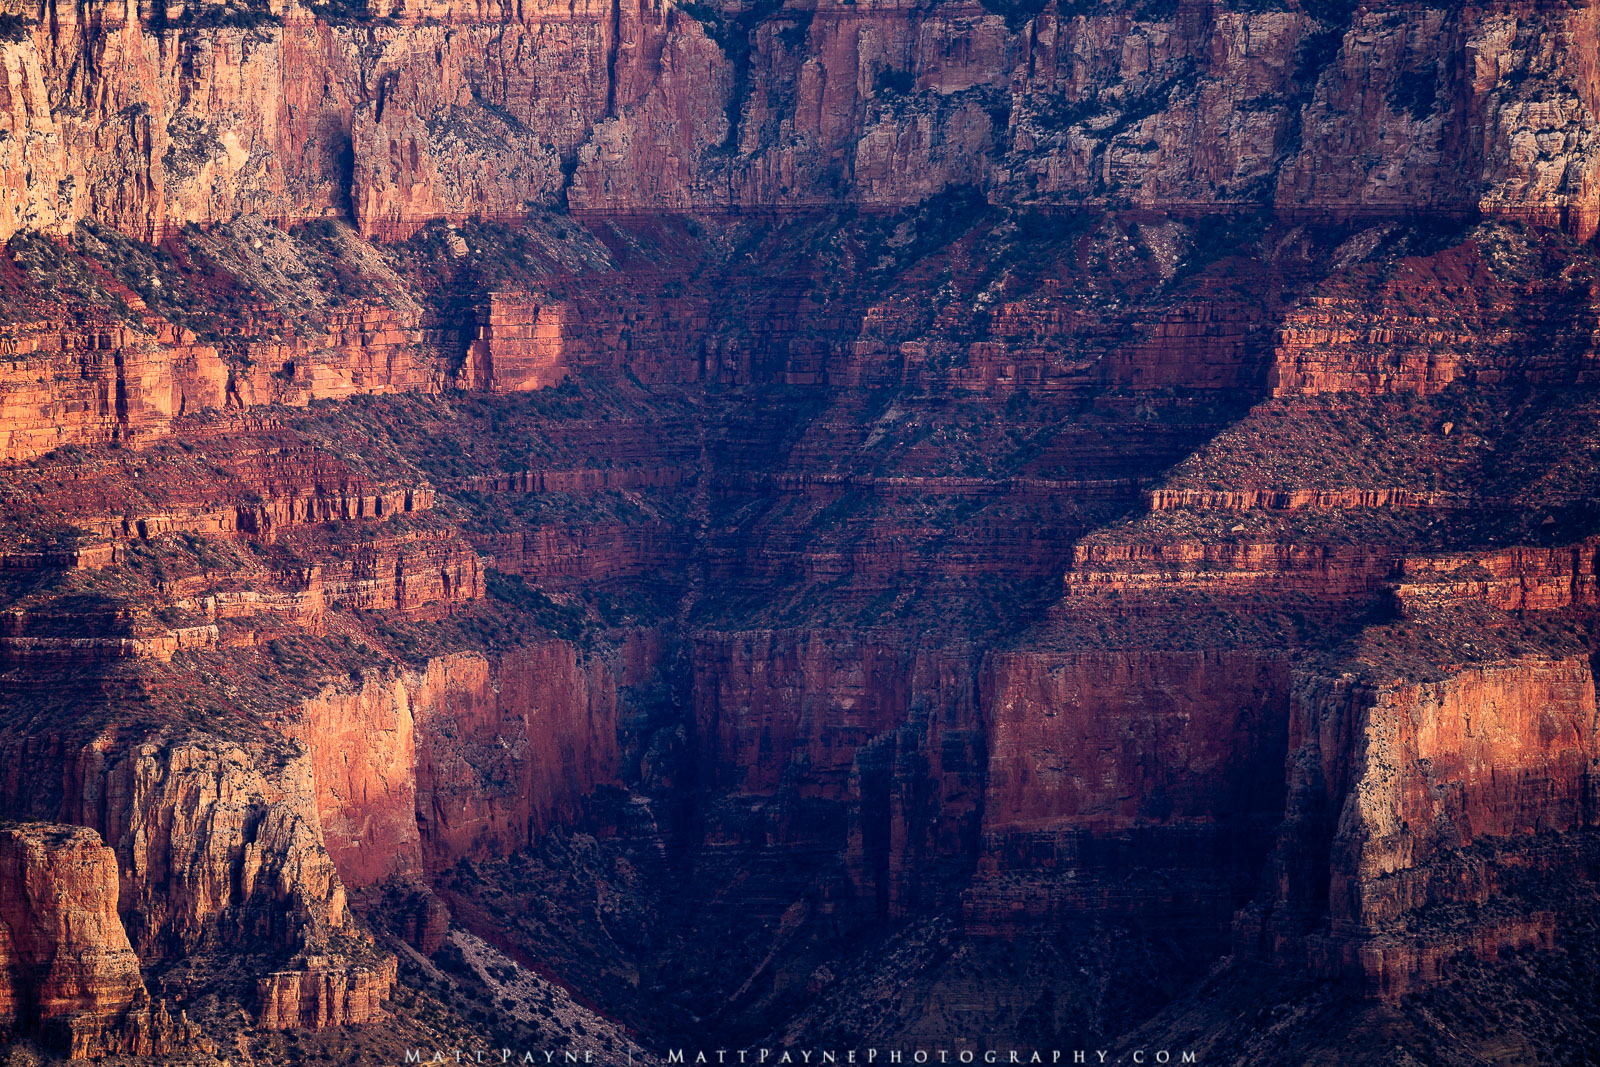 Layers upon layers of erosion revealed by sunrise light in Grand Canyon National Park. Photo © copyright by Matt Payne.